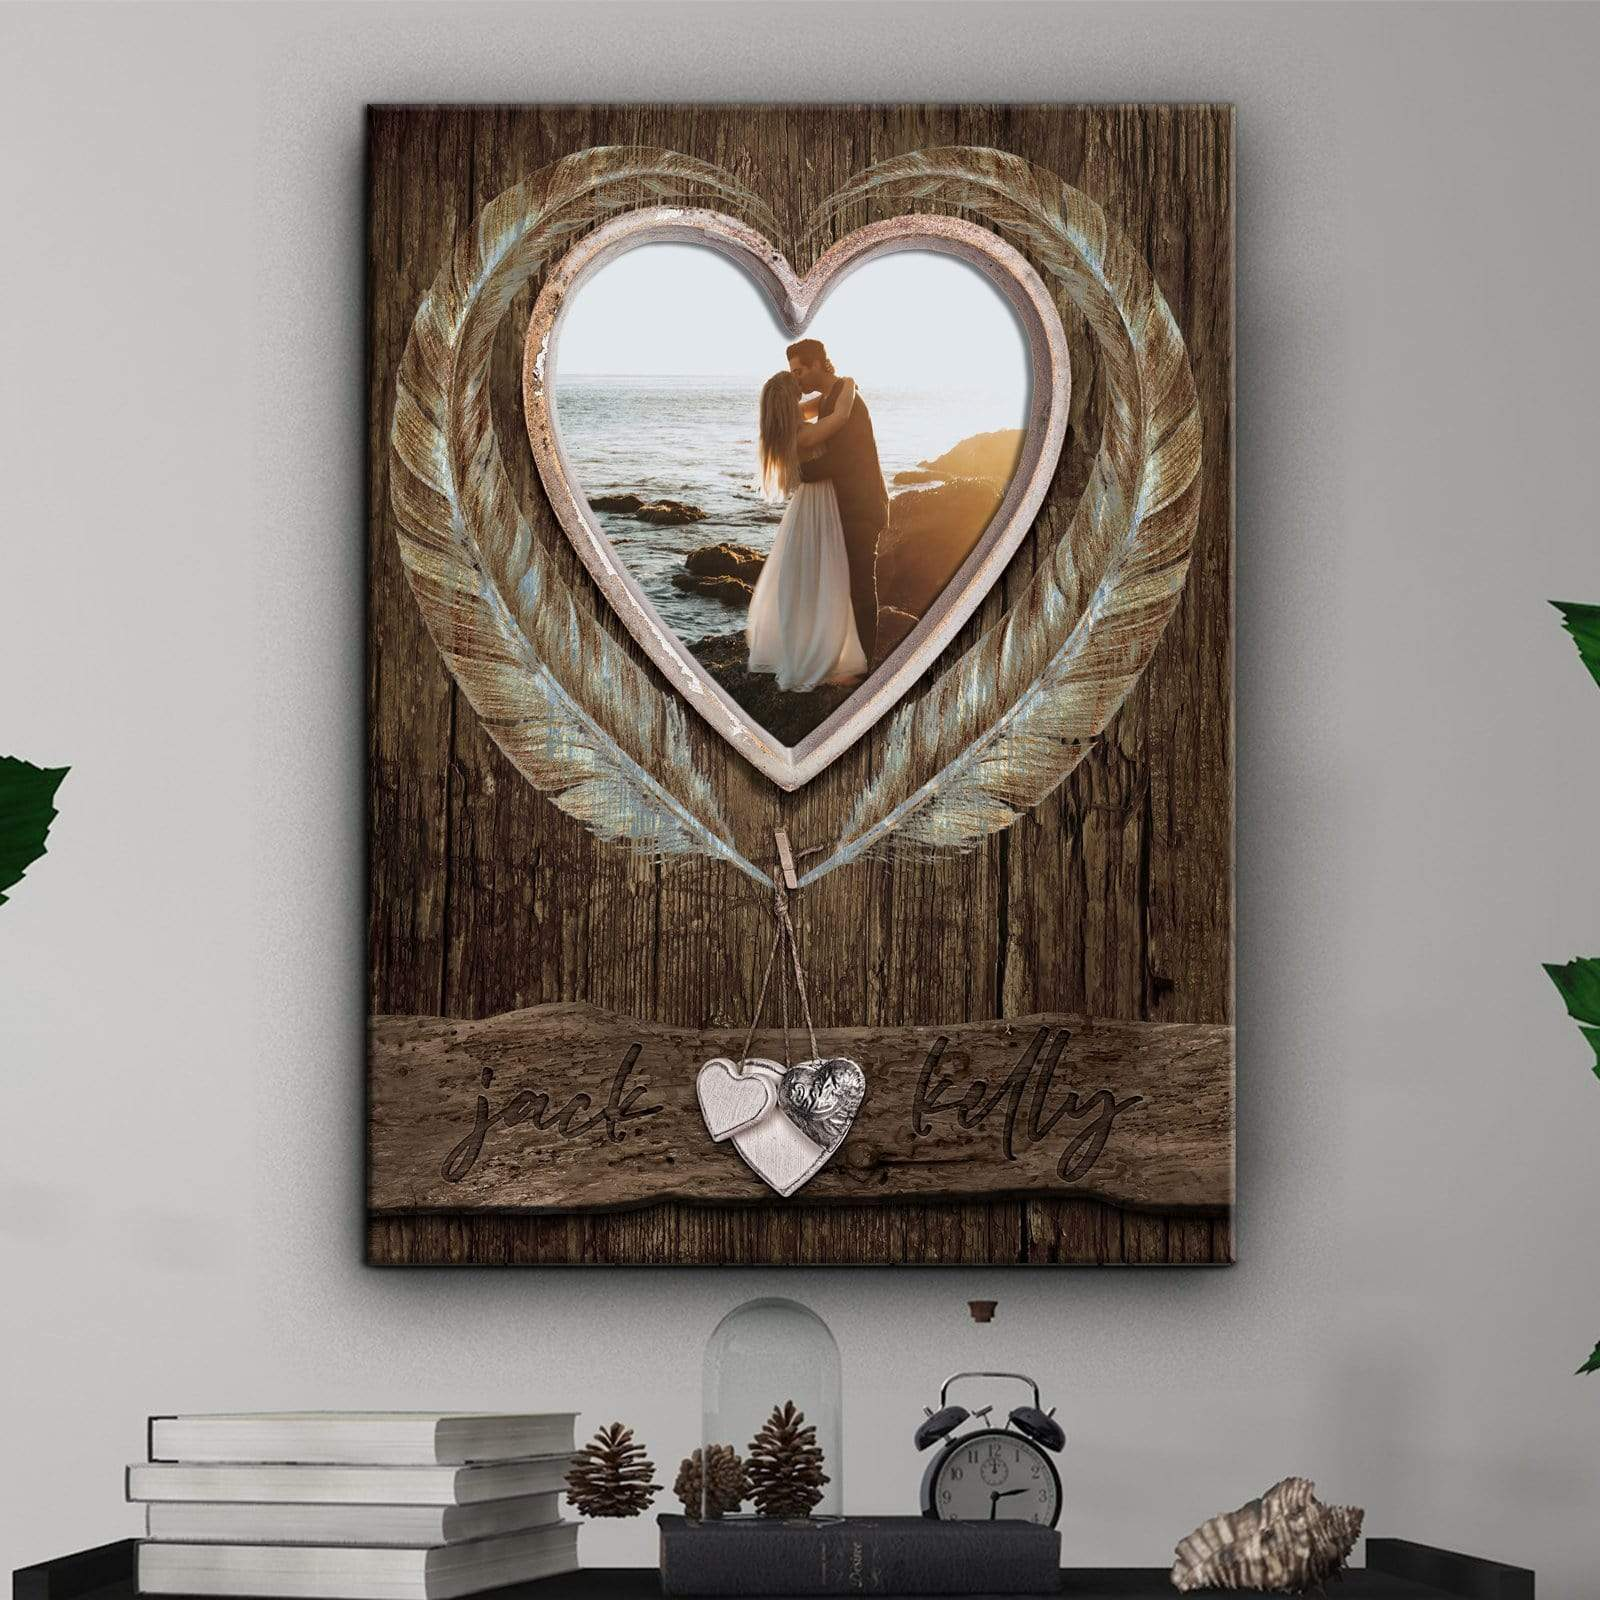 Wooden Heart Window - Personalized